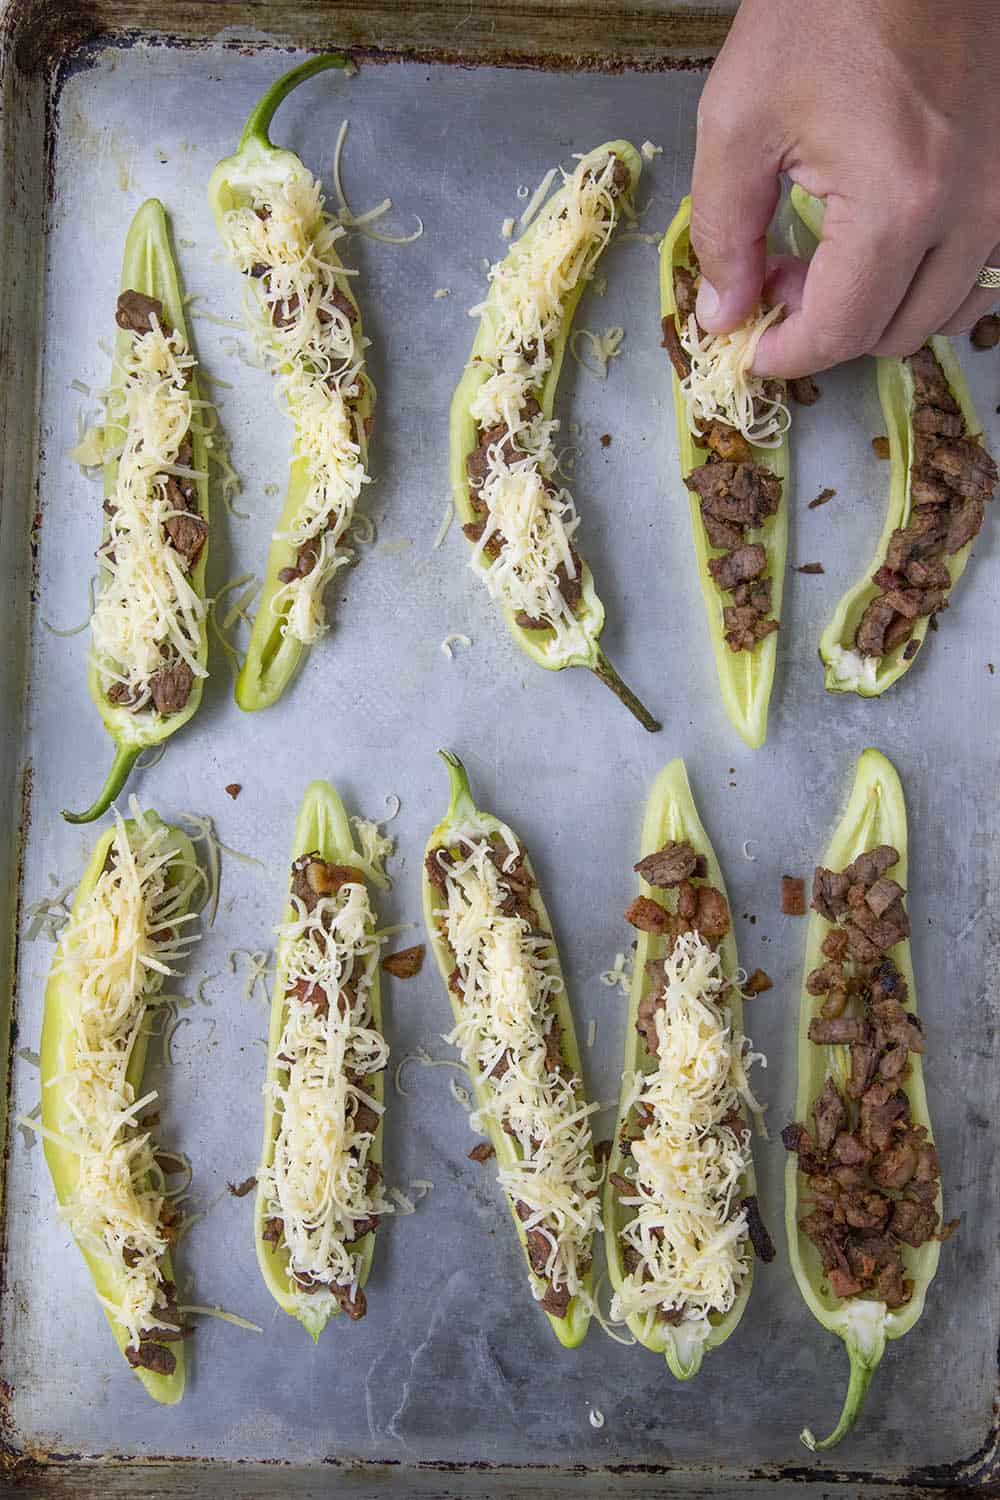 Topping the stuffed banana peppers with cheese